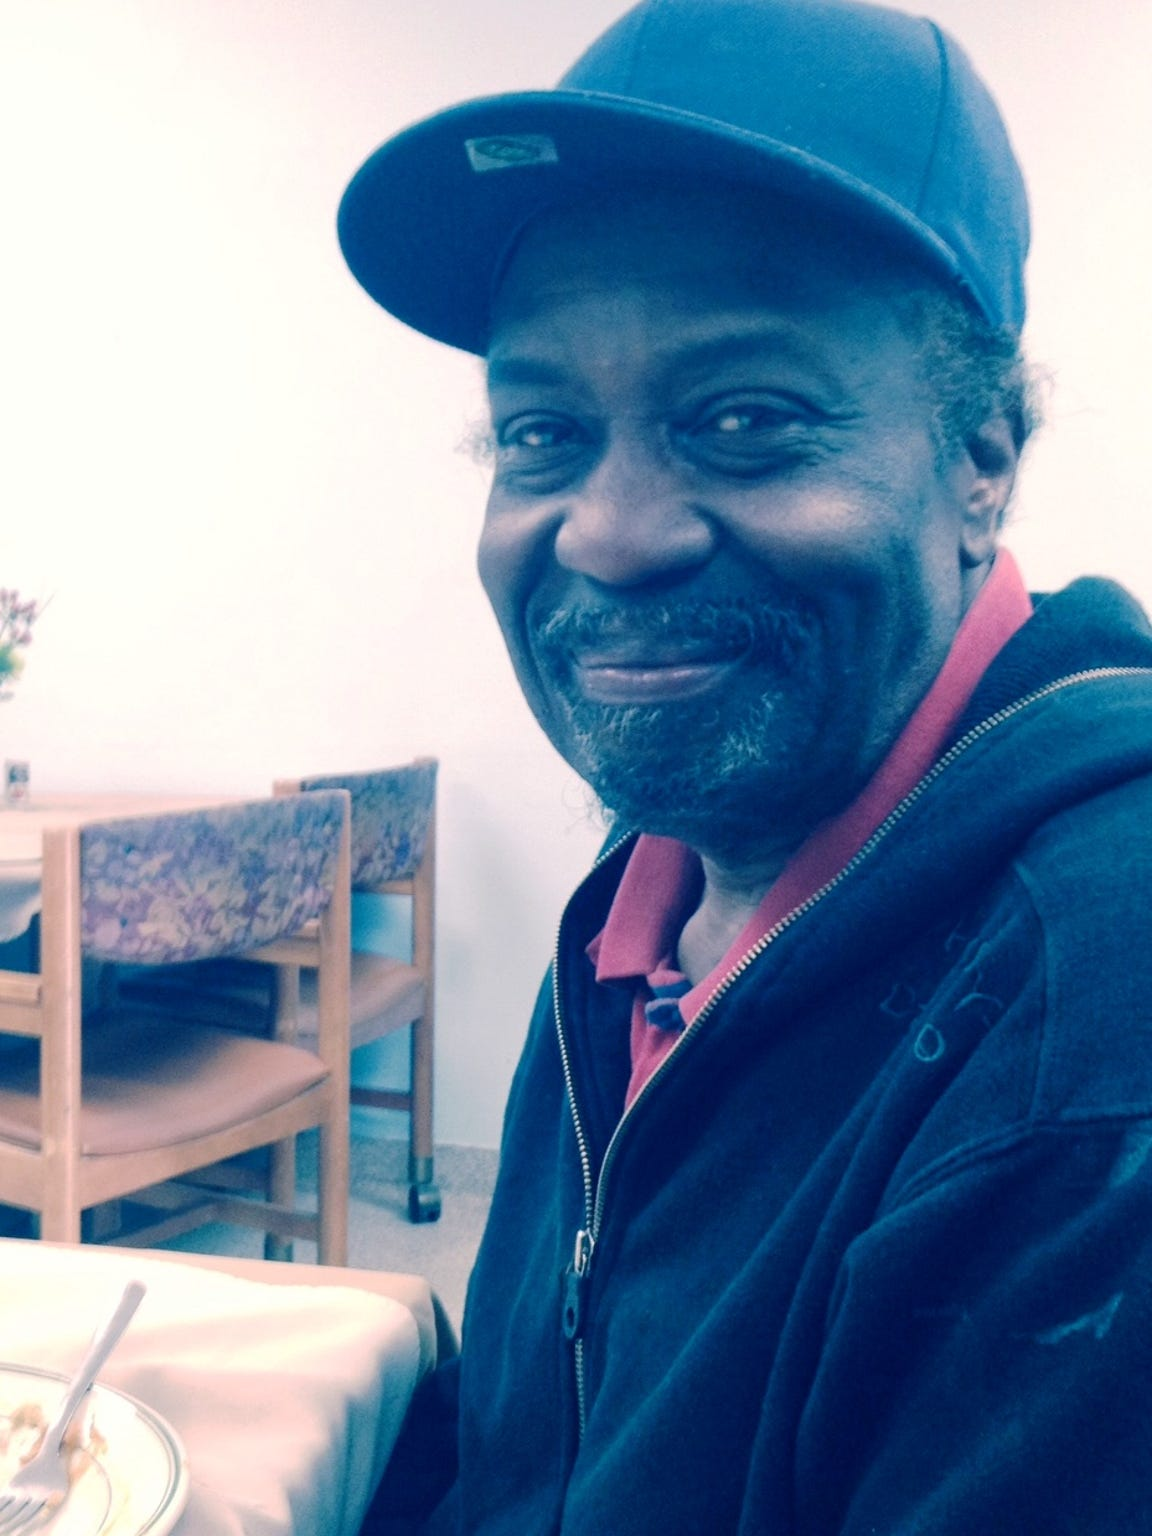 Larry Akins is thankful for many things, despite the setbacks he's suffered in recent years.